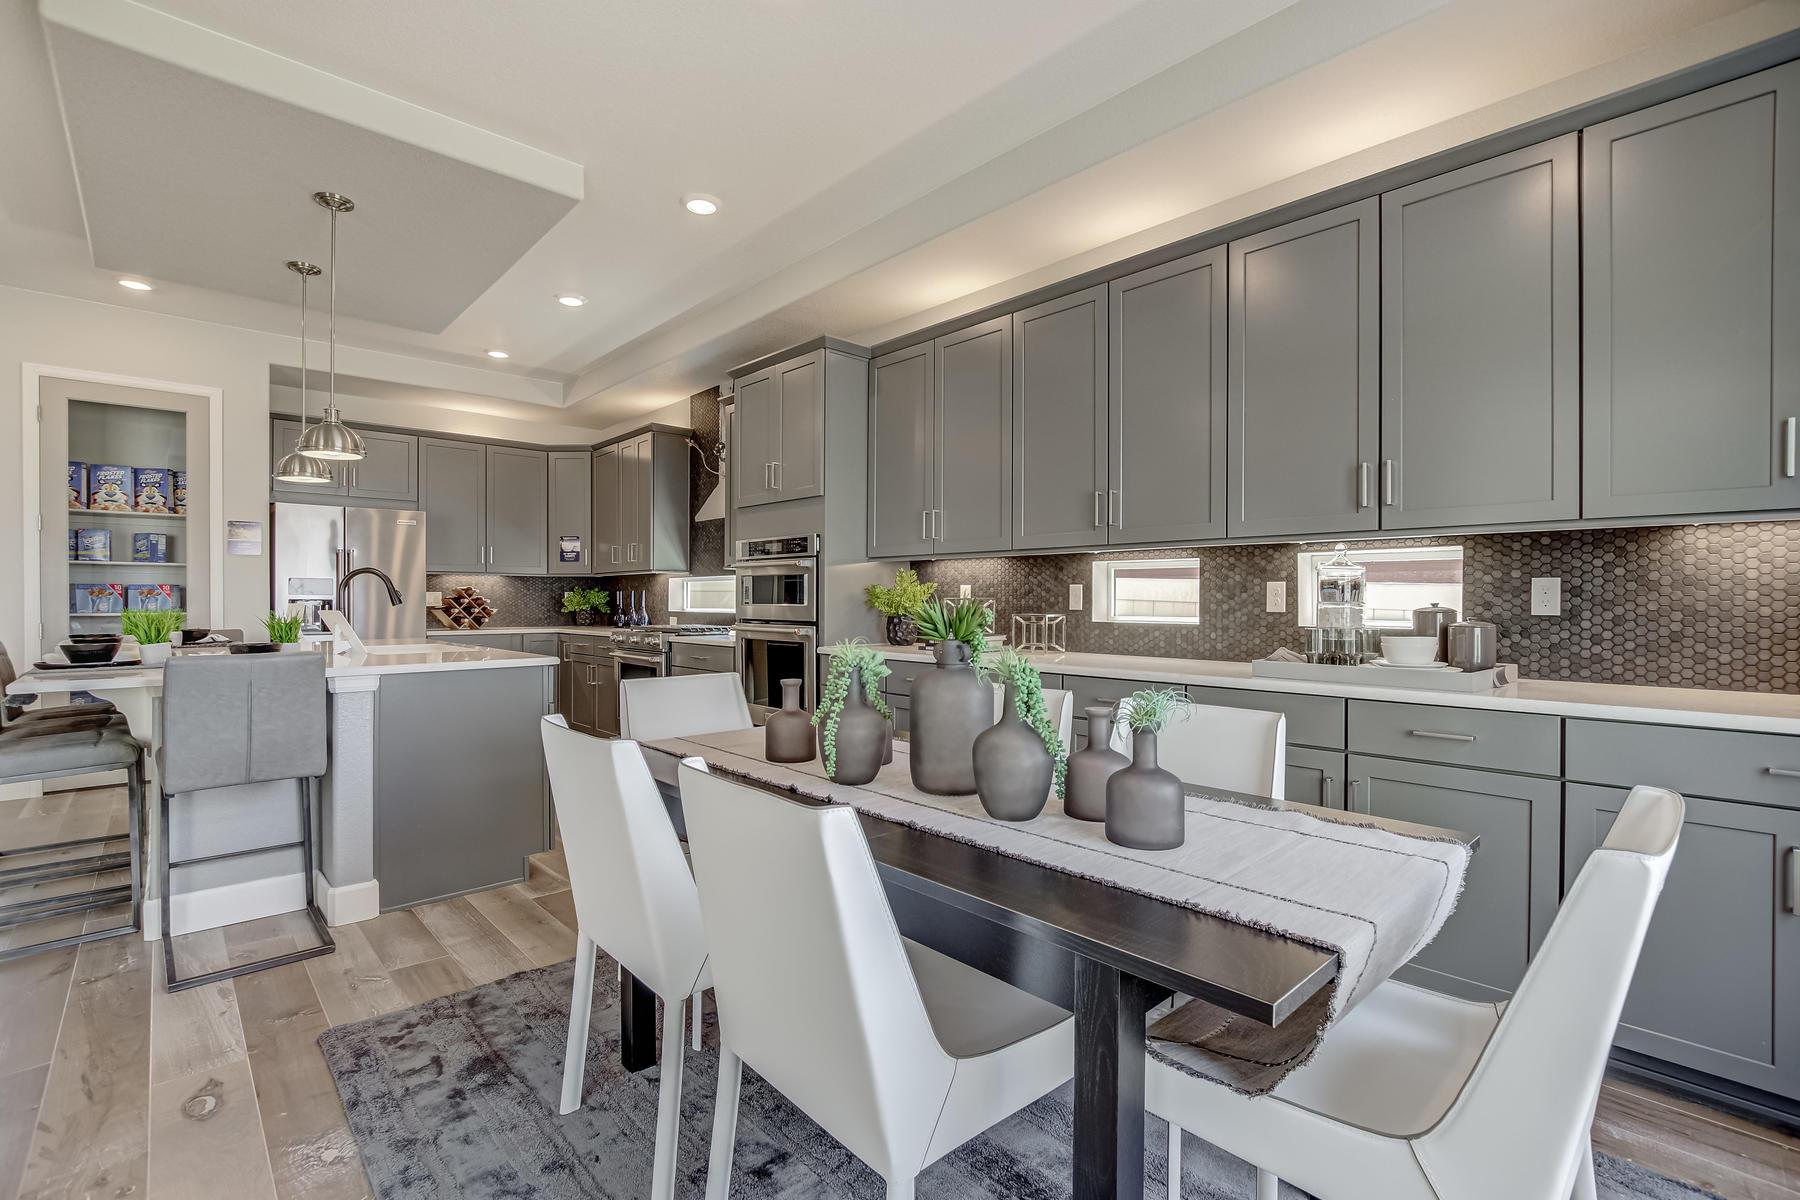 Kitchen featured in the Ponderosa By OakwoodLife in Denver, CO